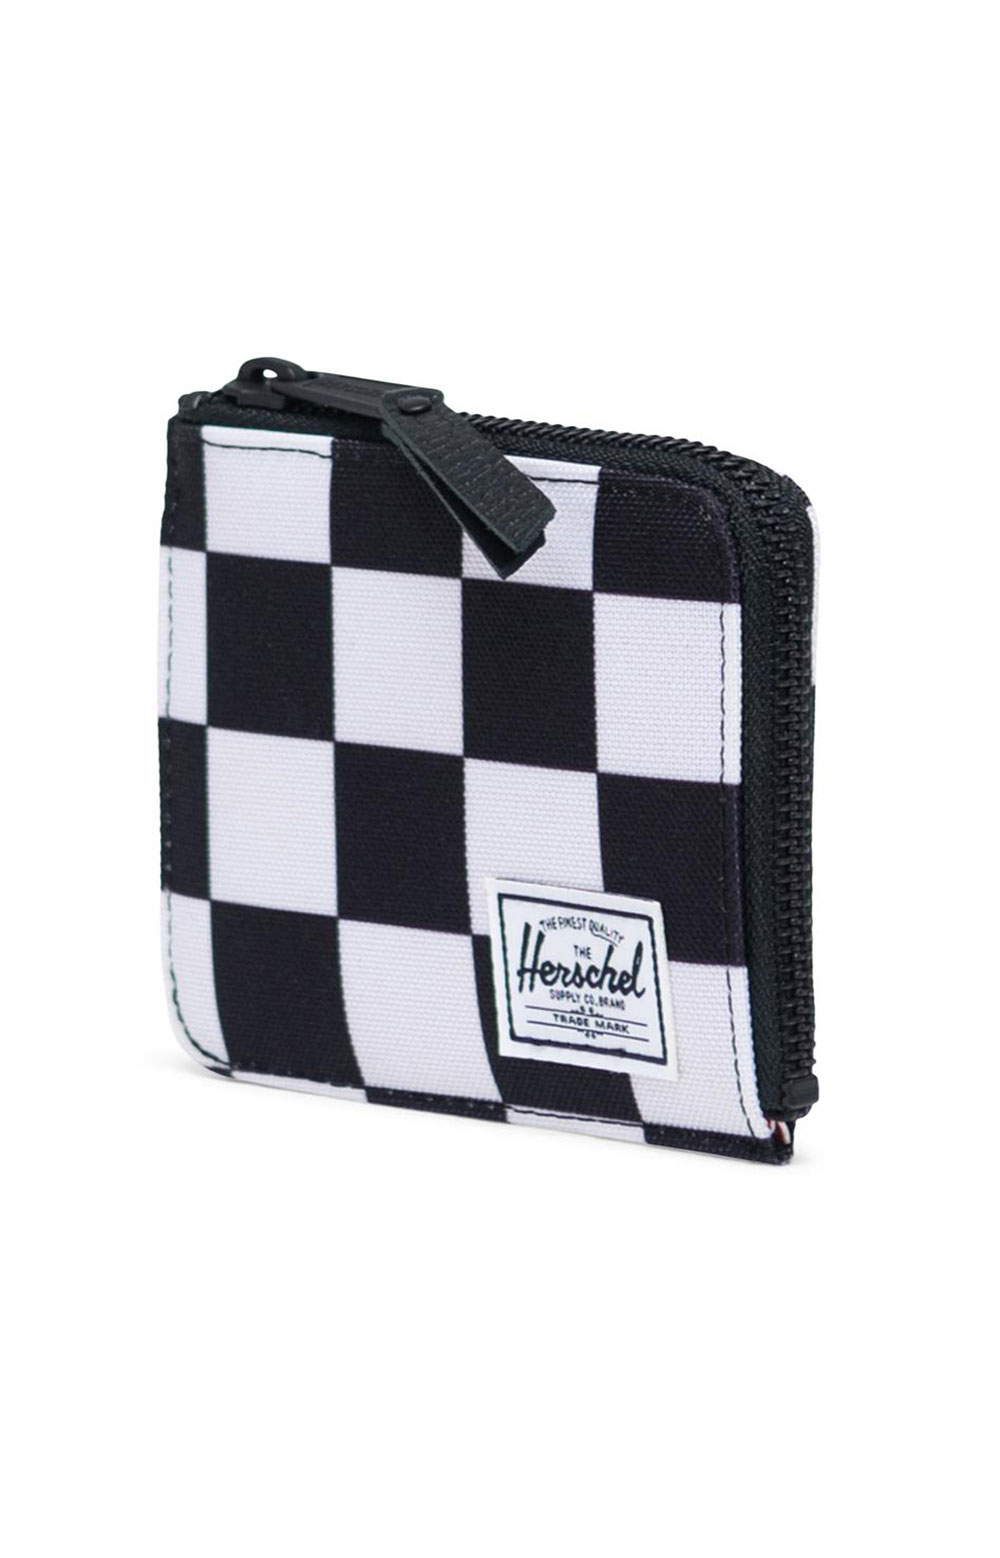 Jack Wallet - Checker Black/White  2